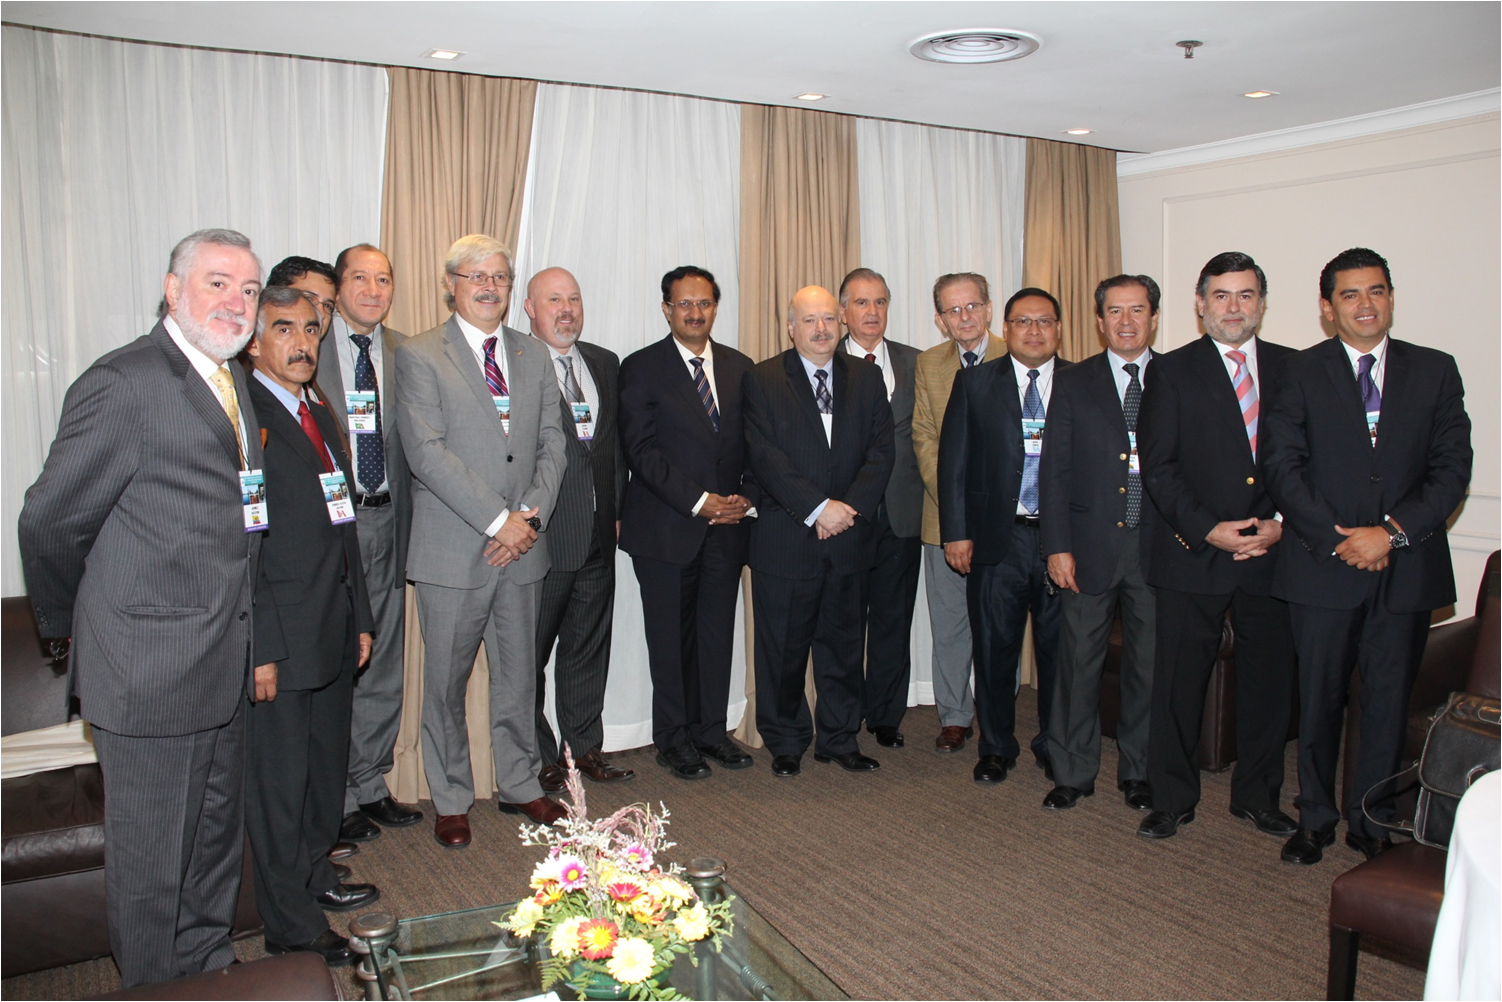 Presidents of IHPBA, AHPBA and the Latin-American HPB Chapters